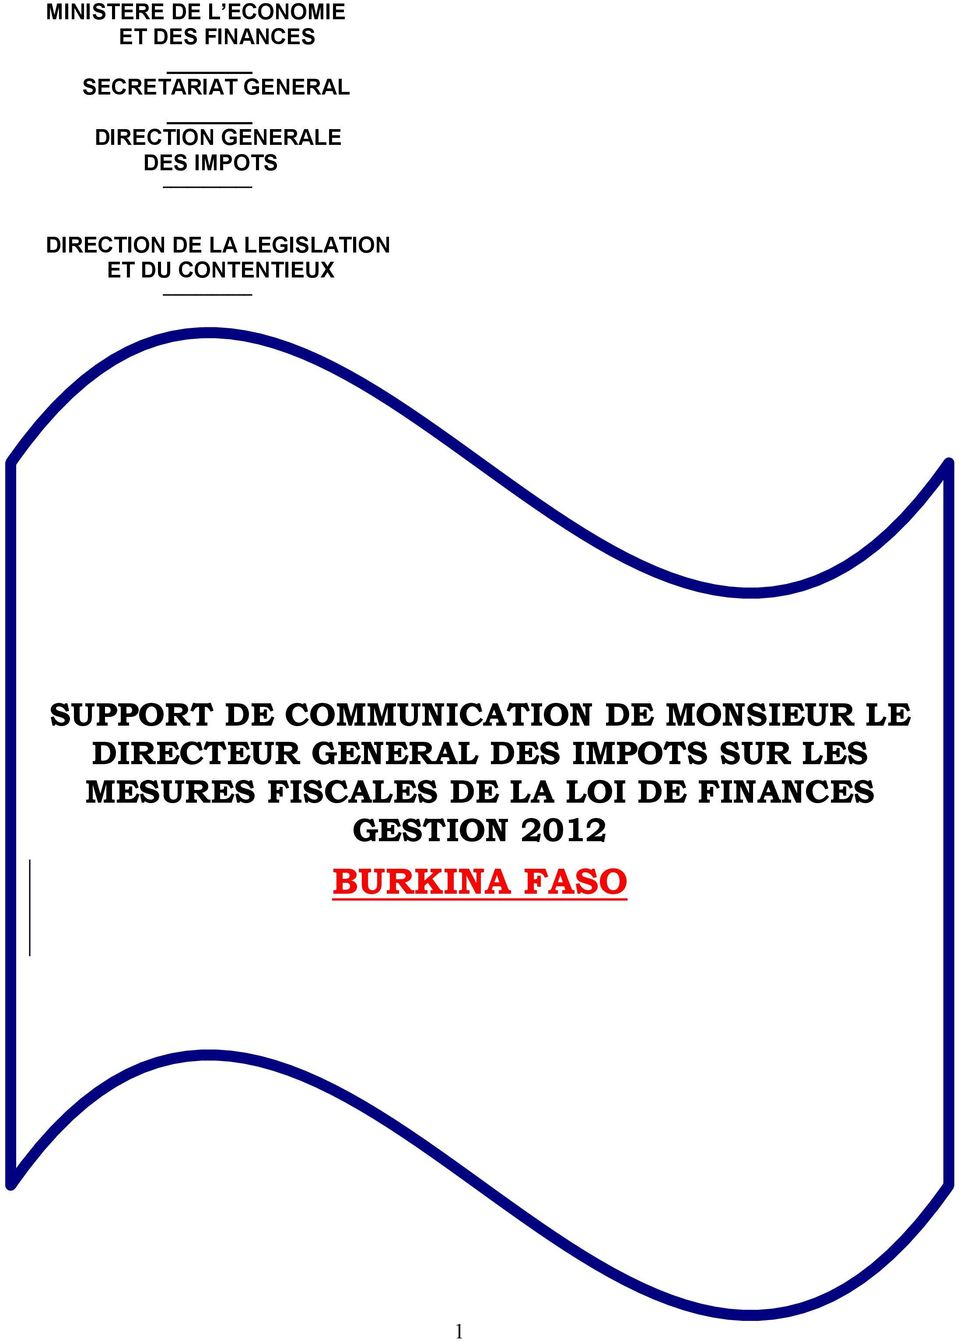 SUPPORT DE COMMUNICATION DE MONSIEUR LE DIRECTEUR GENERAL DES IMPOTS